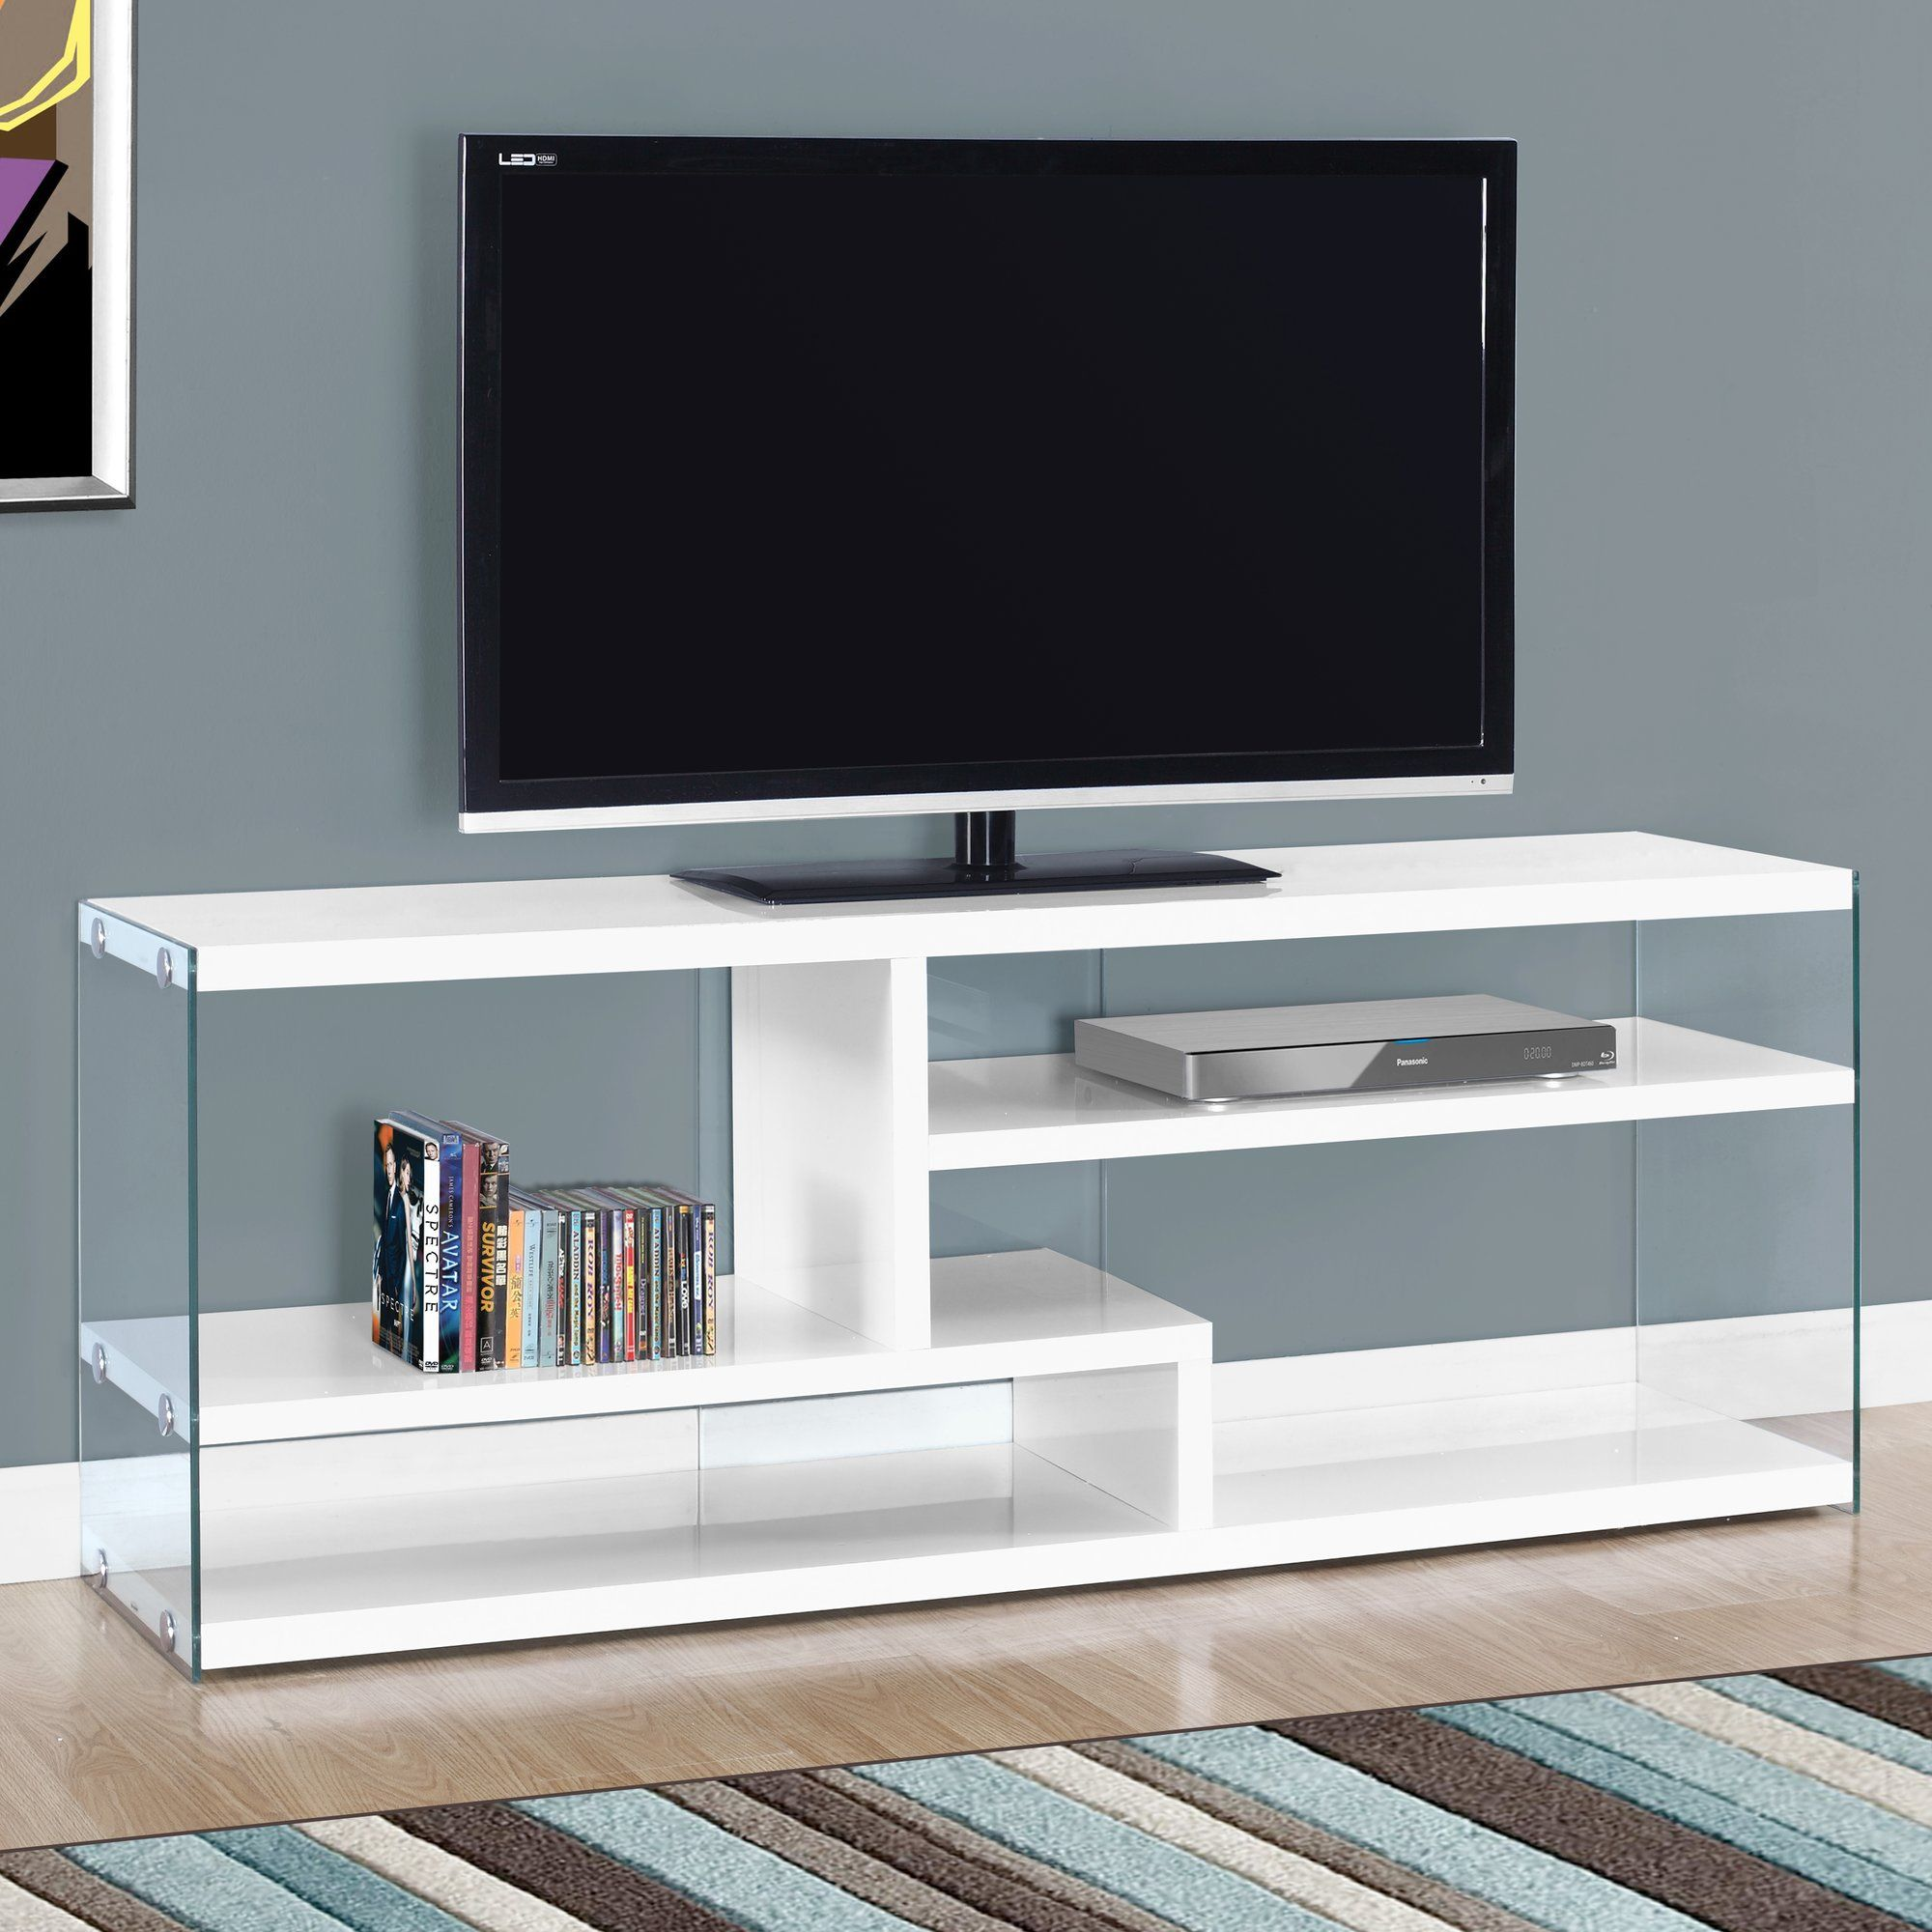 Customer Image Zoomed Furniture Placement Living Room Glass Tv